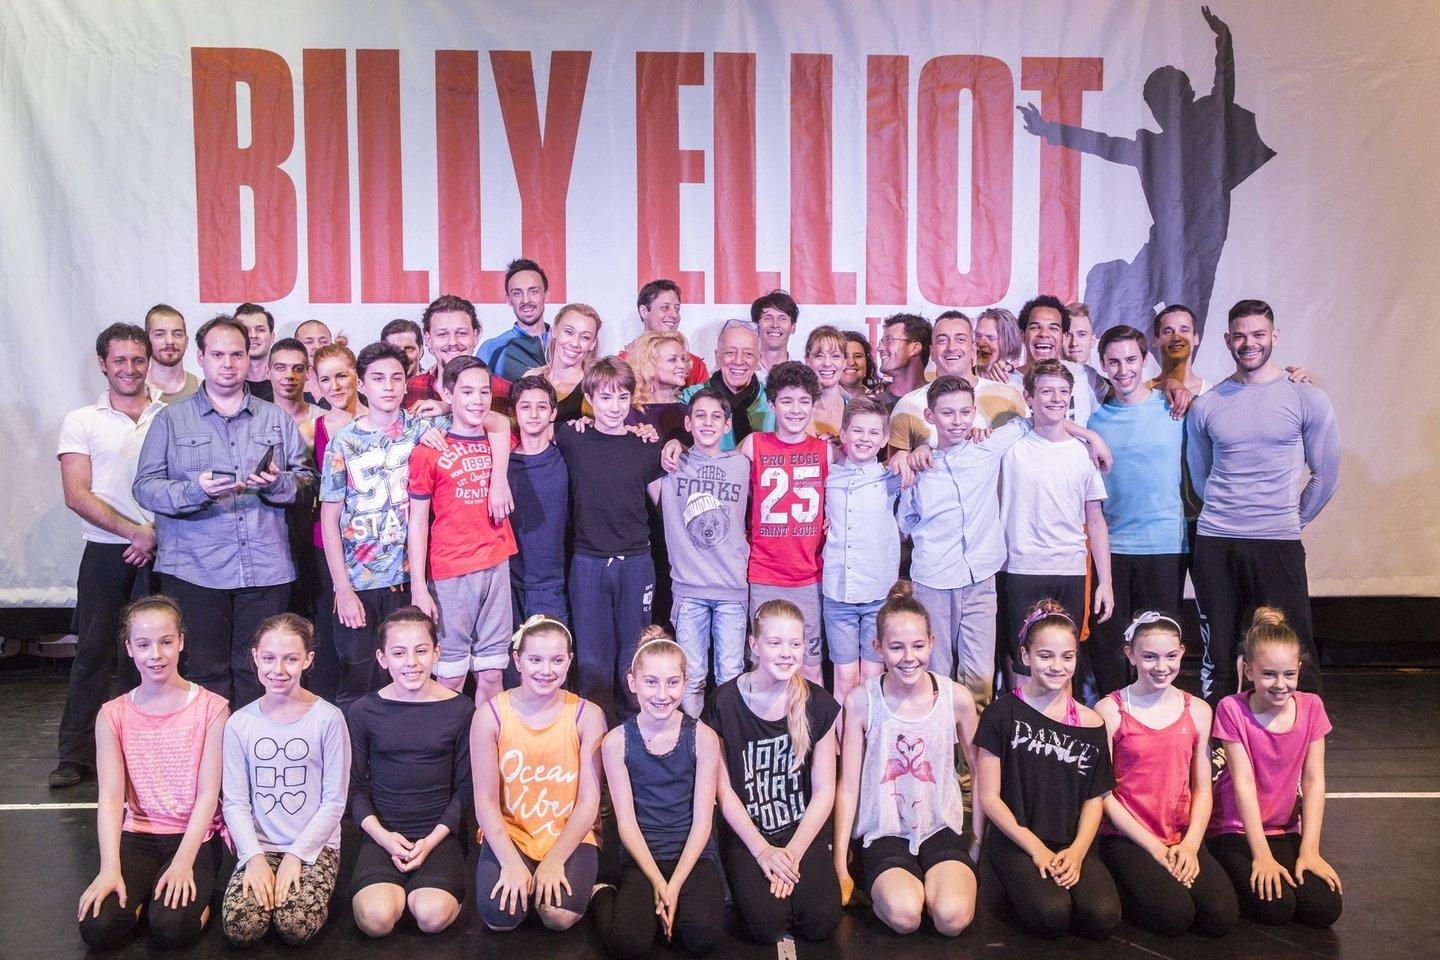 Billy Elliot - The Musical Returns To Erkel Theatre On 4 July